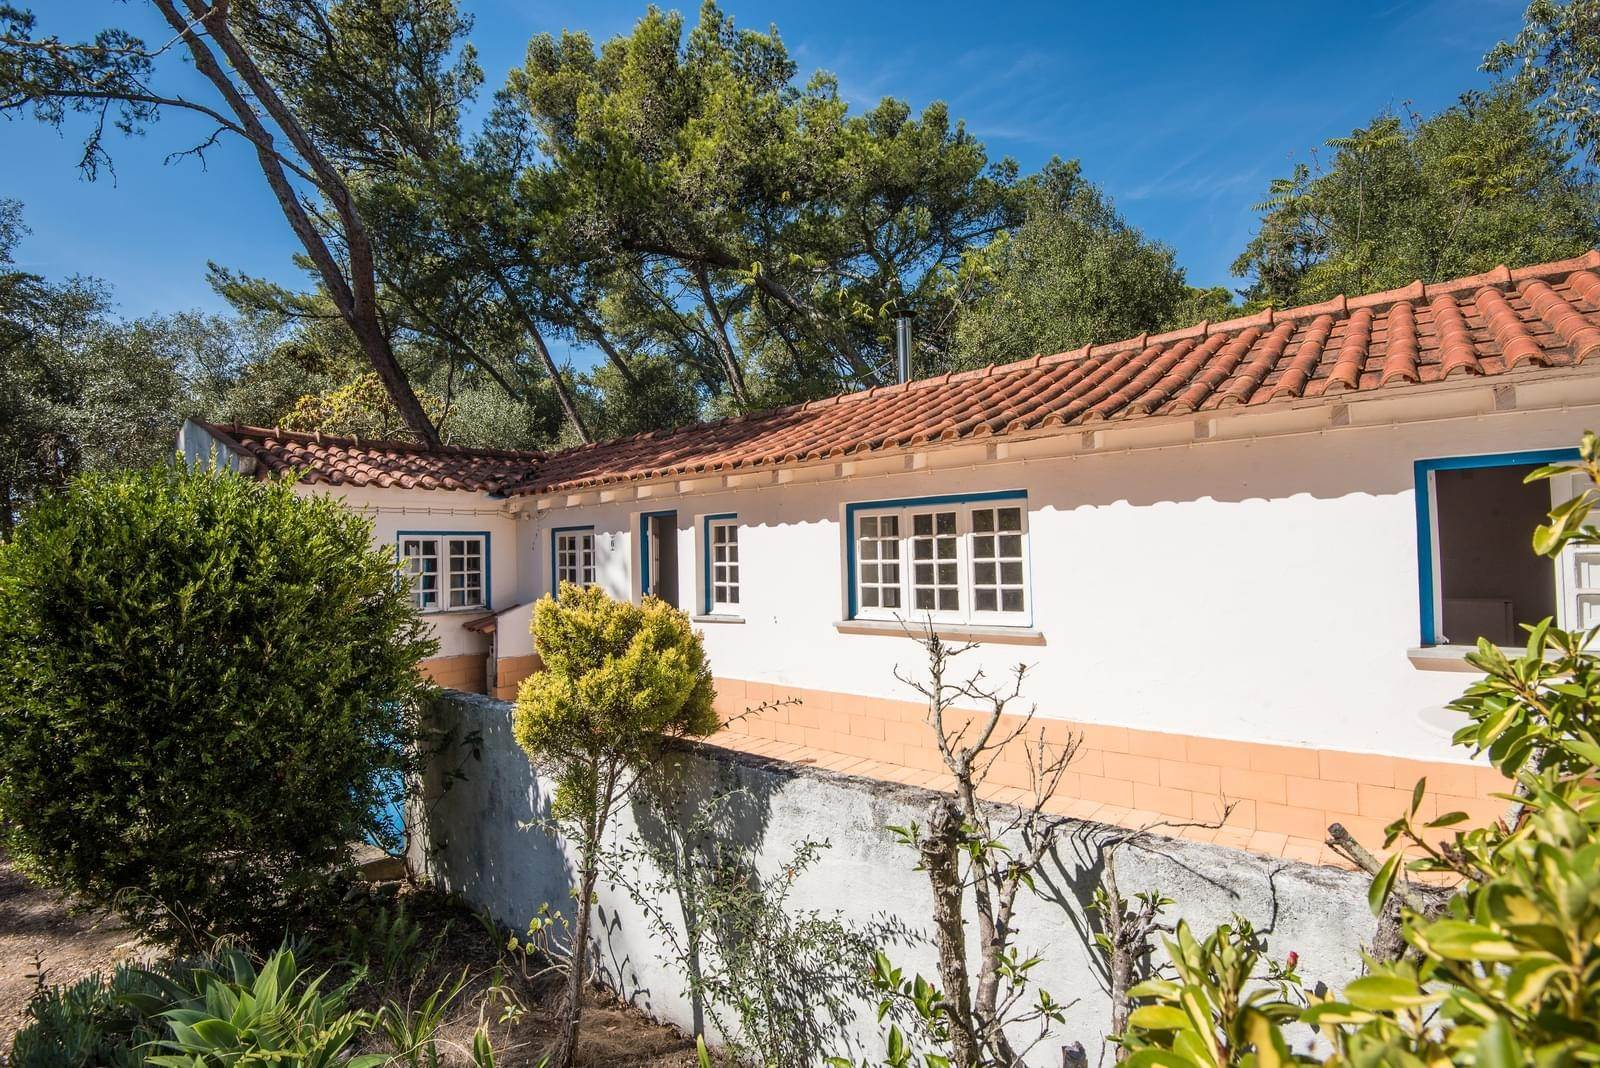 11. 別墅 / 联排别墅 為 出售 在 Unique property, located next to Quinta da Marinha, a quiet area.The property comprises six small villas, with deep refu... Cascais, 葡萄牙